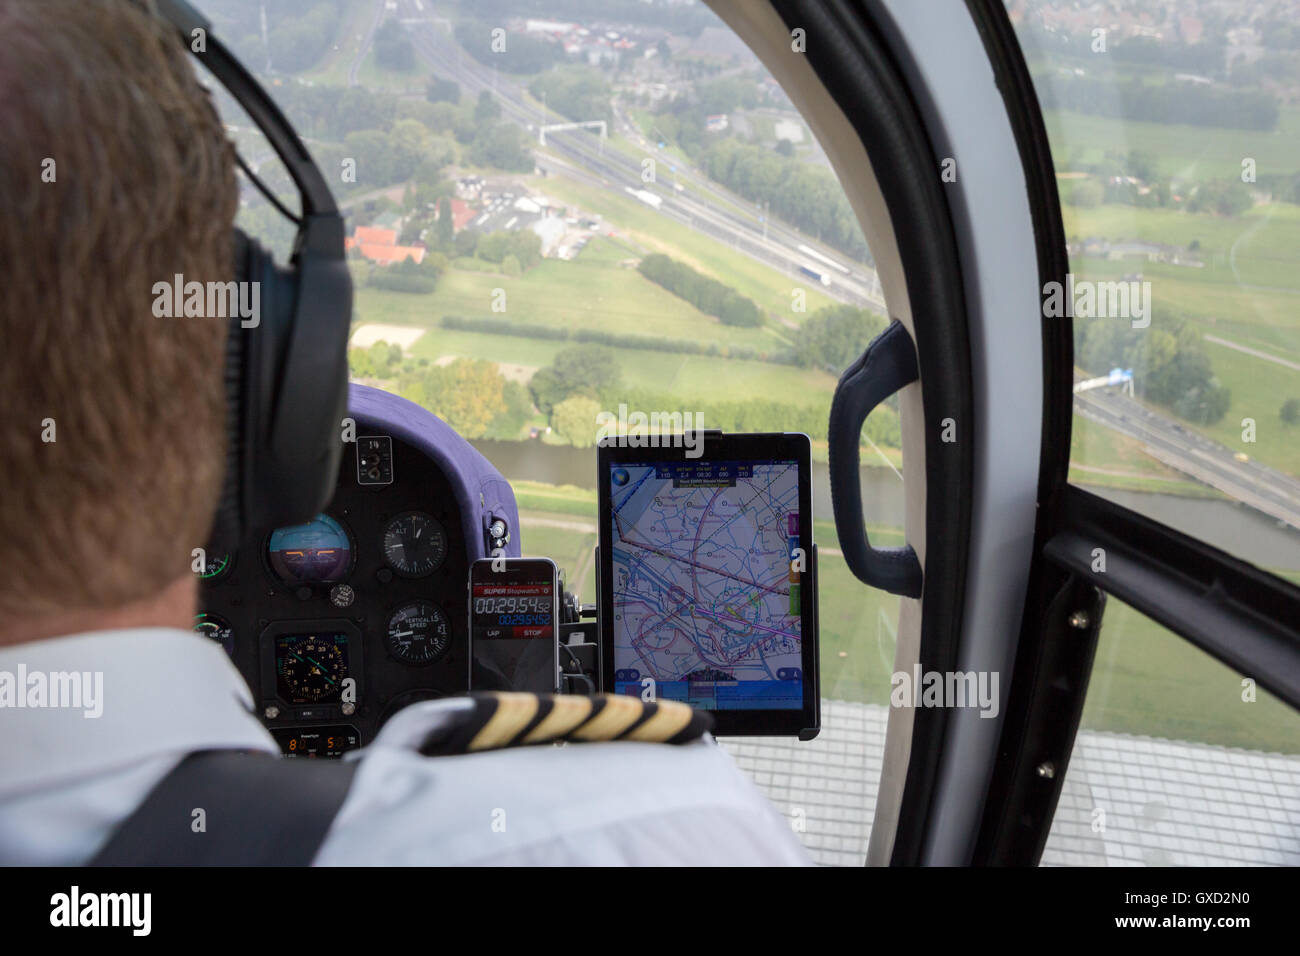 Helicopter pilot using tablet for chart navigation - Stock Image